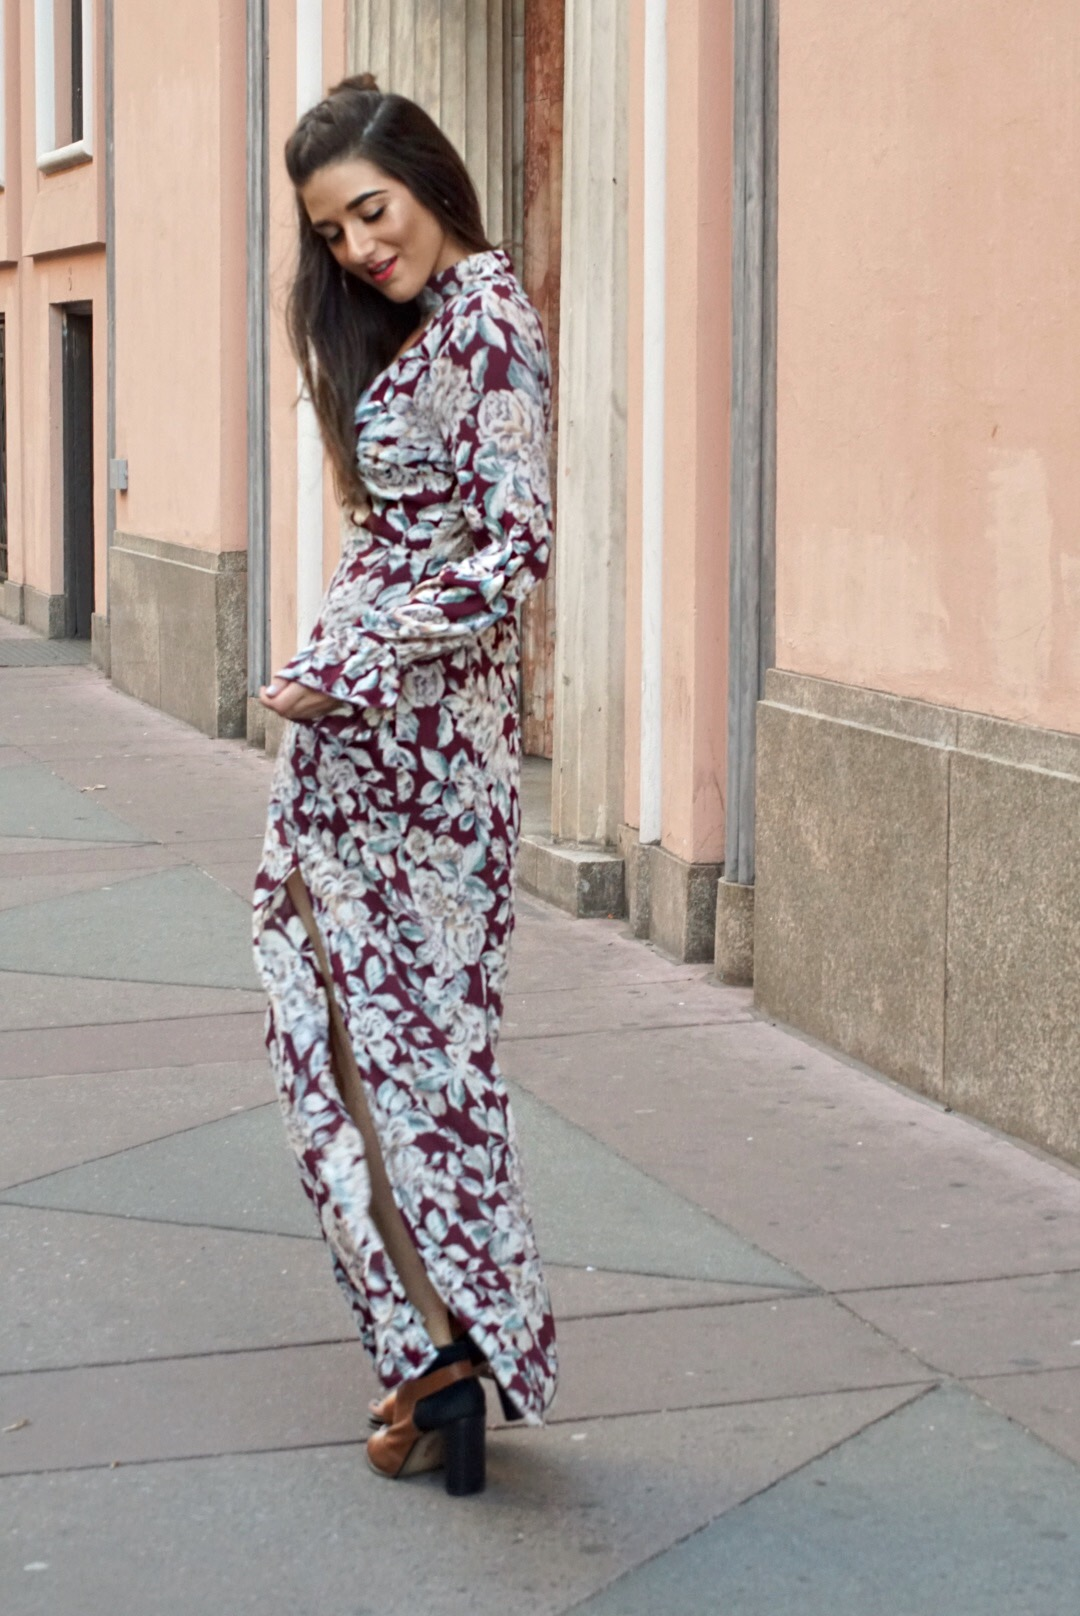 Trescool Floral Dress How To Stay Productive When Working From Home Esther Santer Fashion Blog NYC Street Style Blogger Outfit OOTD Trendy Pretty Spring Beautiful Shoes M4D3 Topknot Braid Wearing Online Shopping Inspo Women Girl Inspiration Photoshoot.JPG